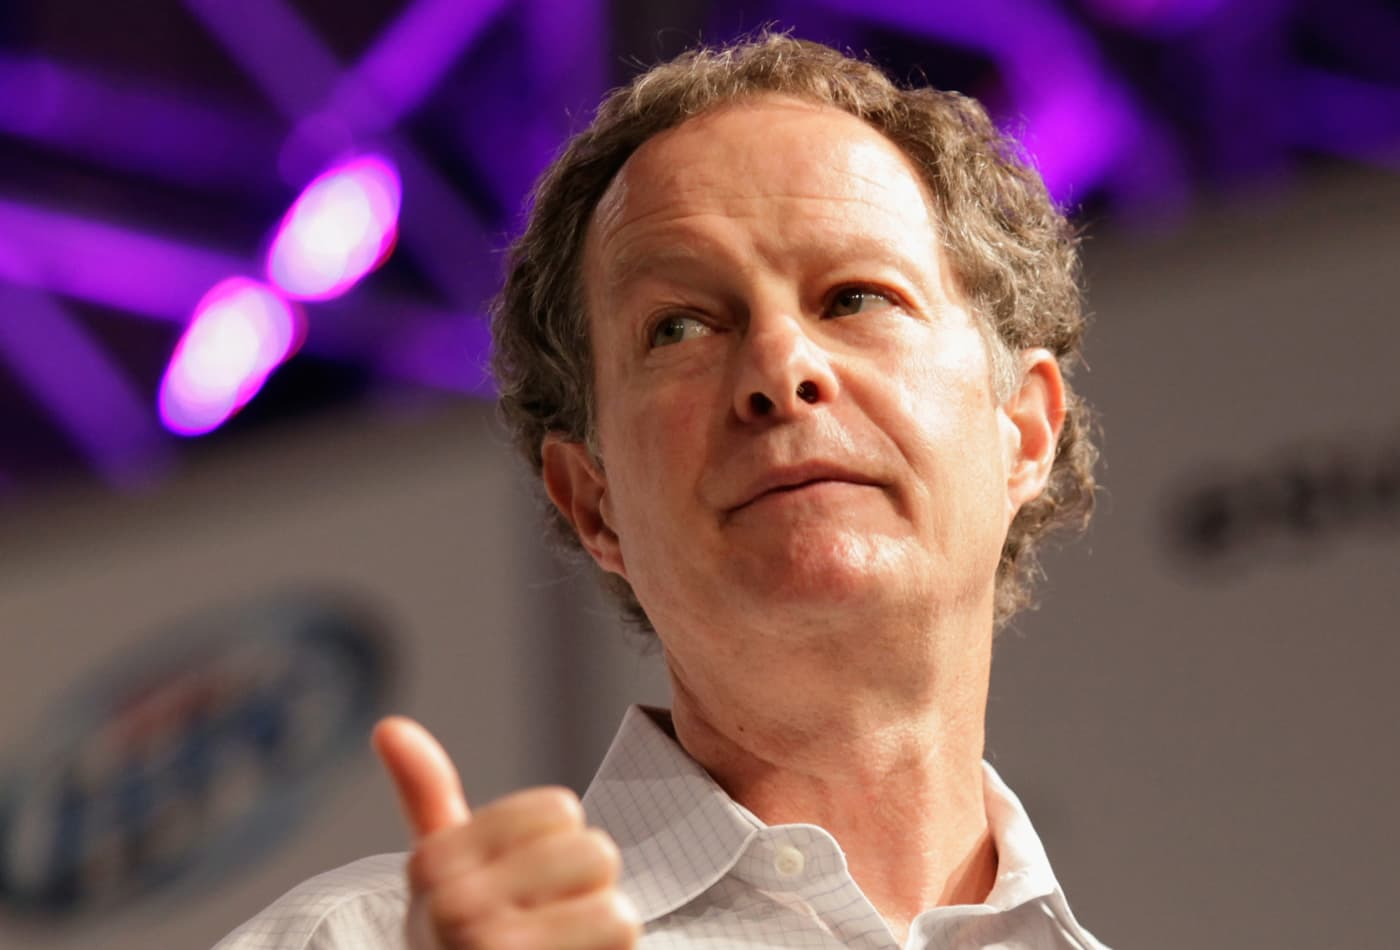 Whole Foods CEO John Mackey: Plant-based meat not good for